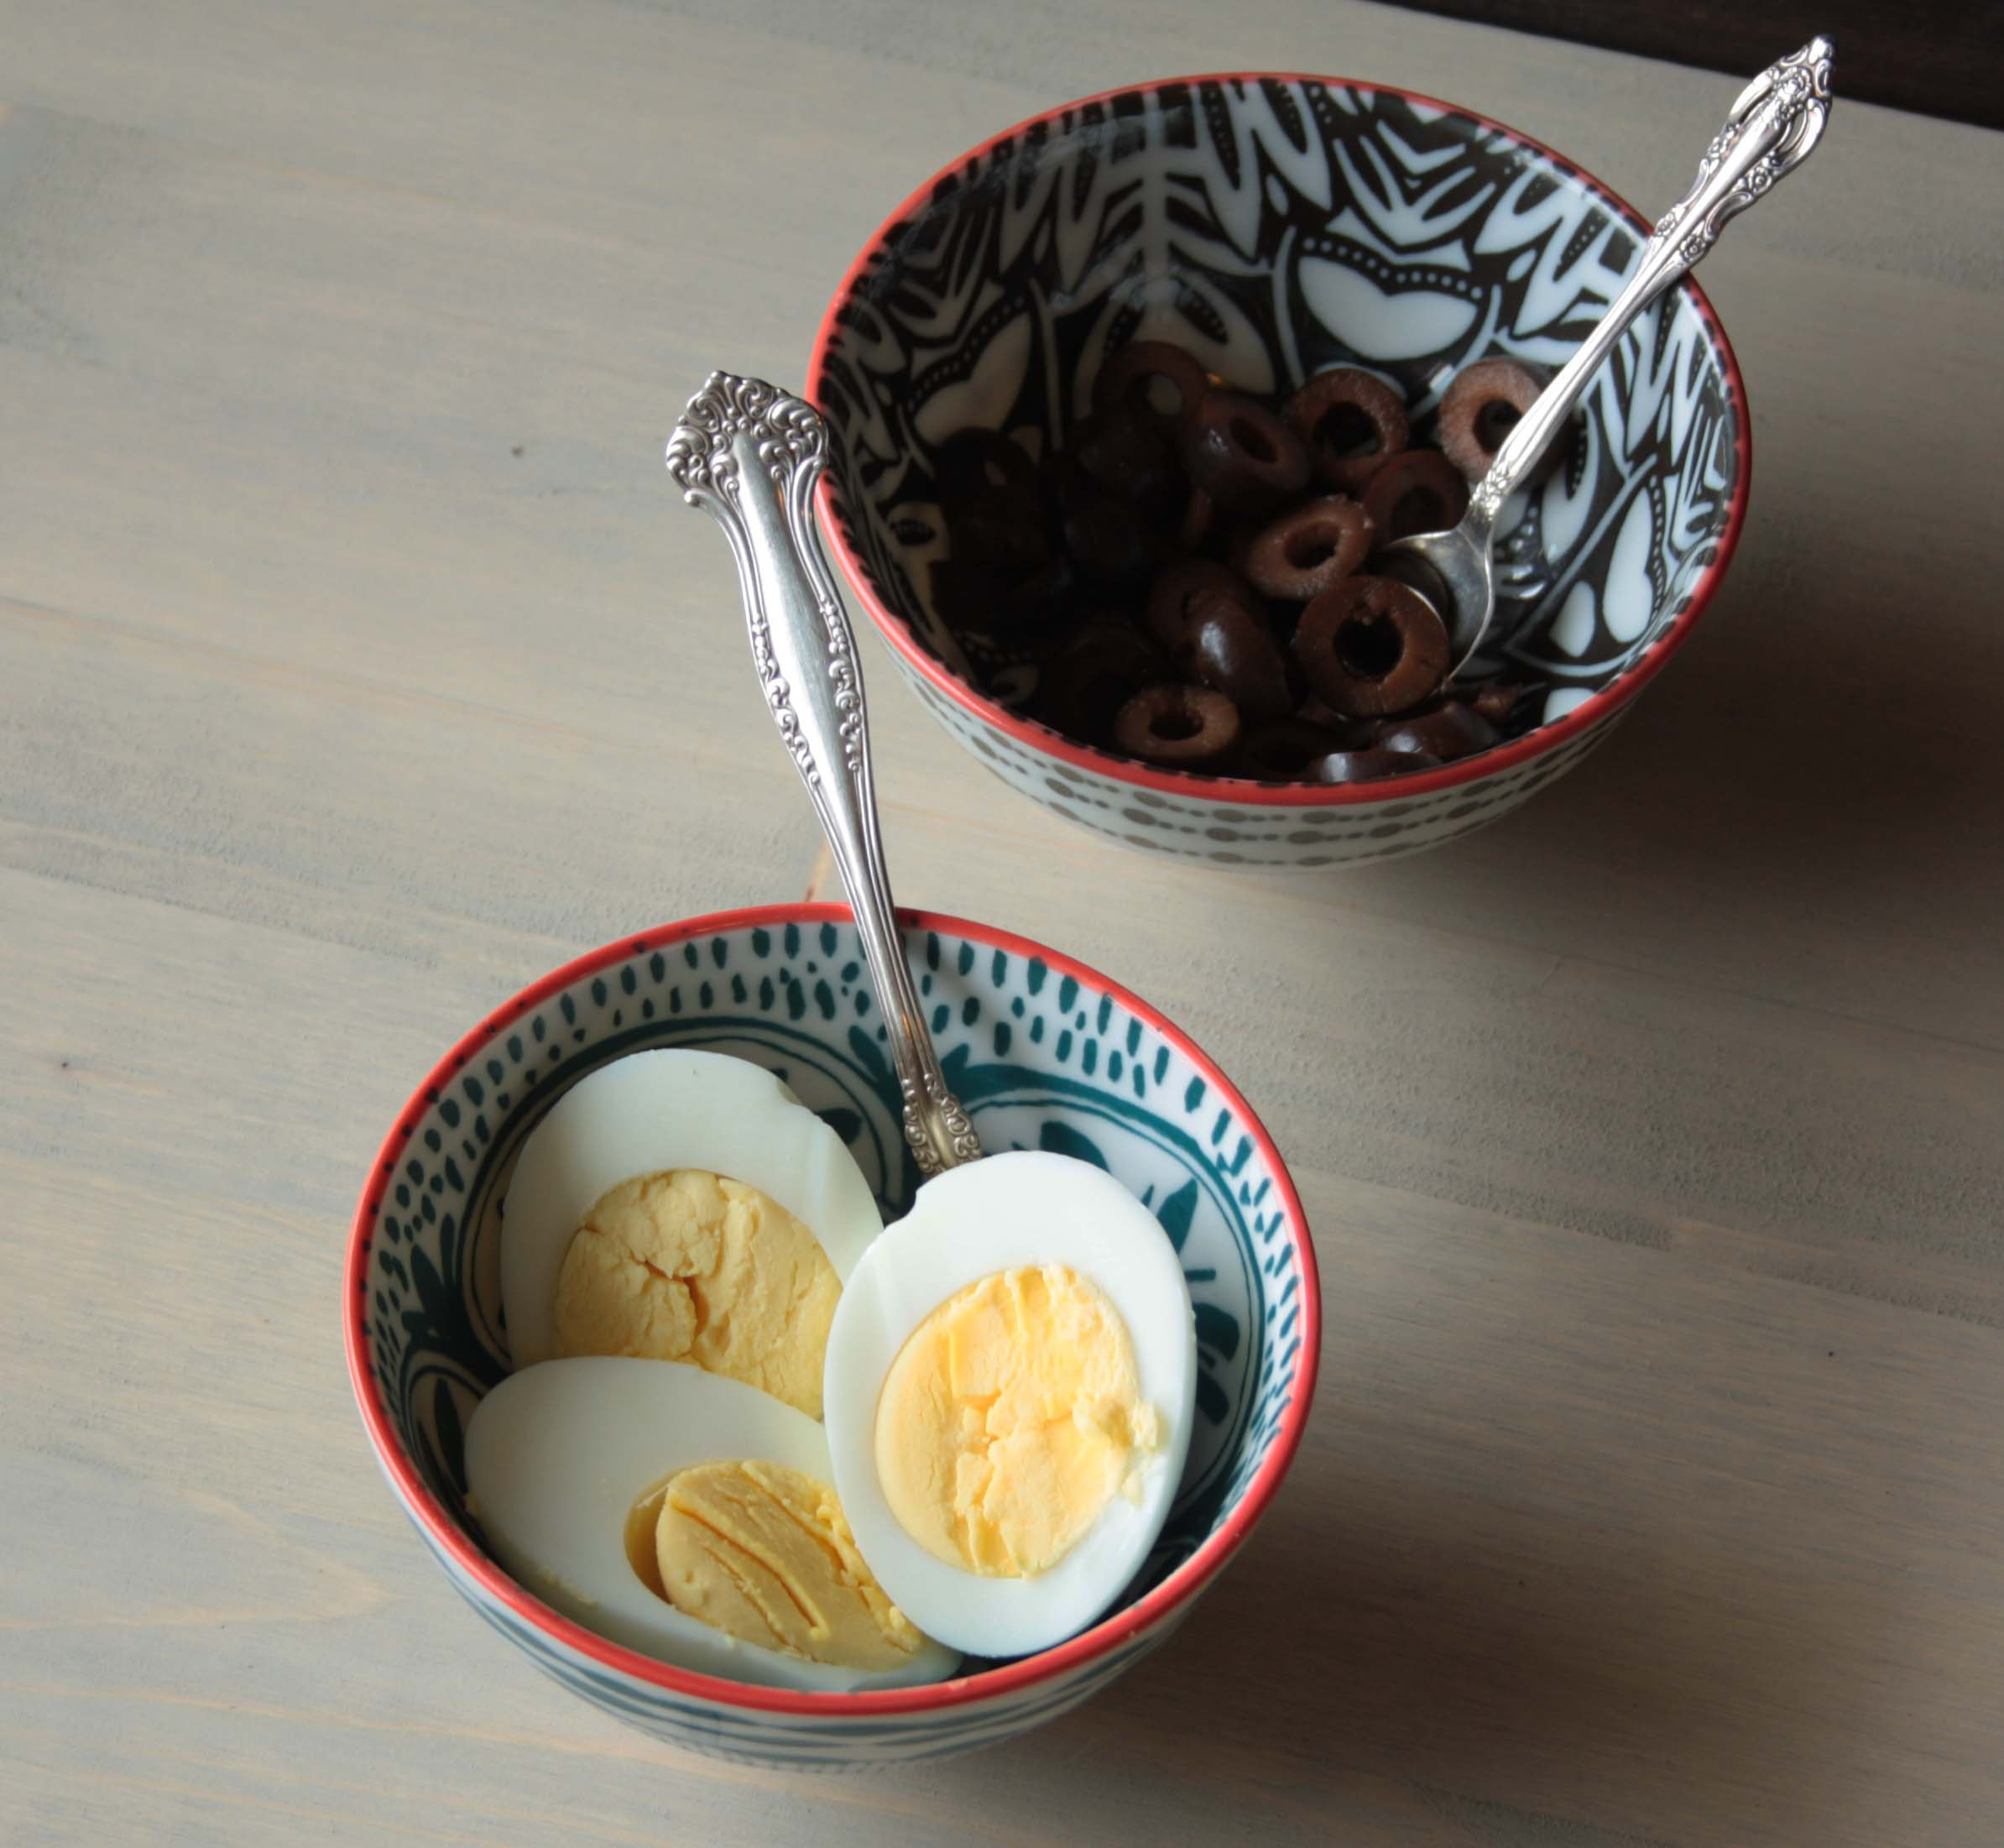 Black olives and harb boiled eggs